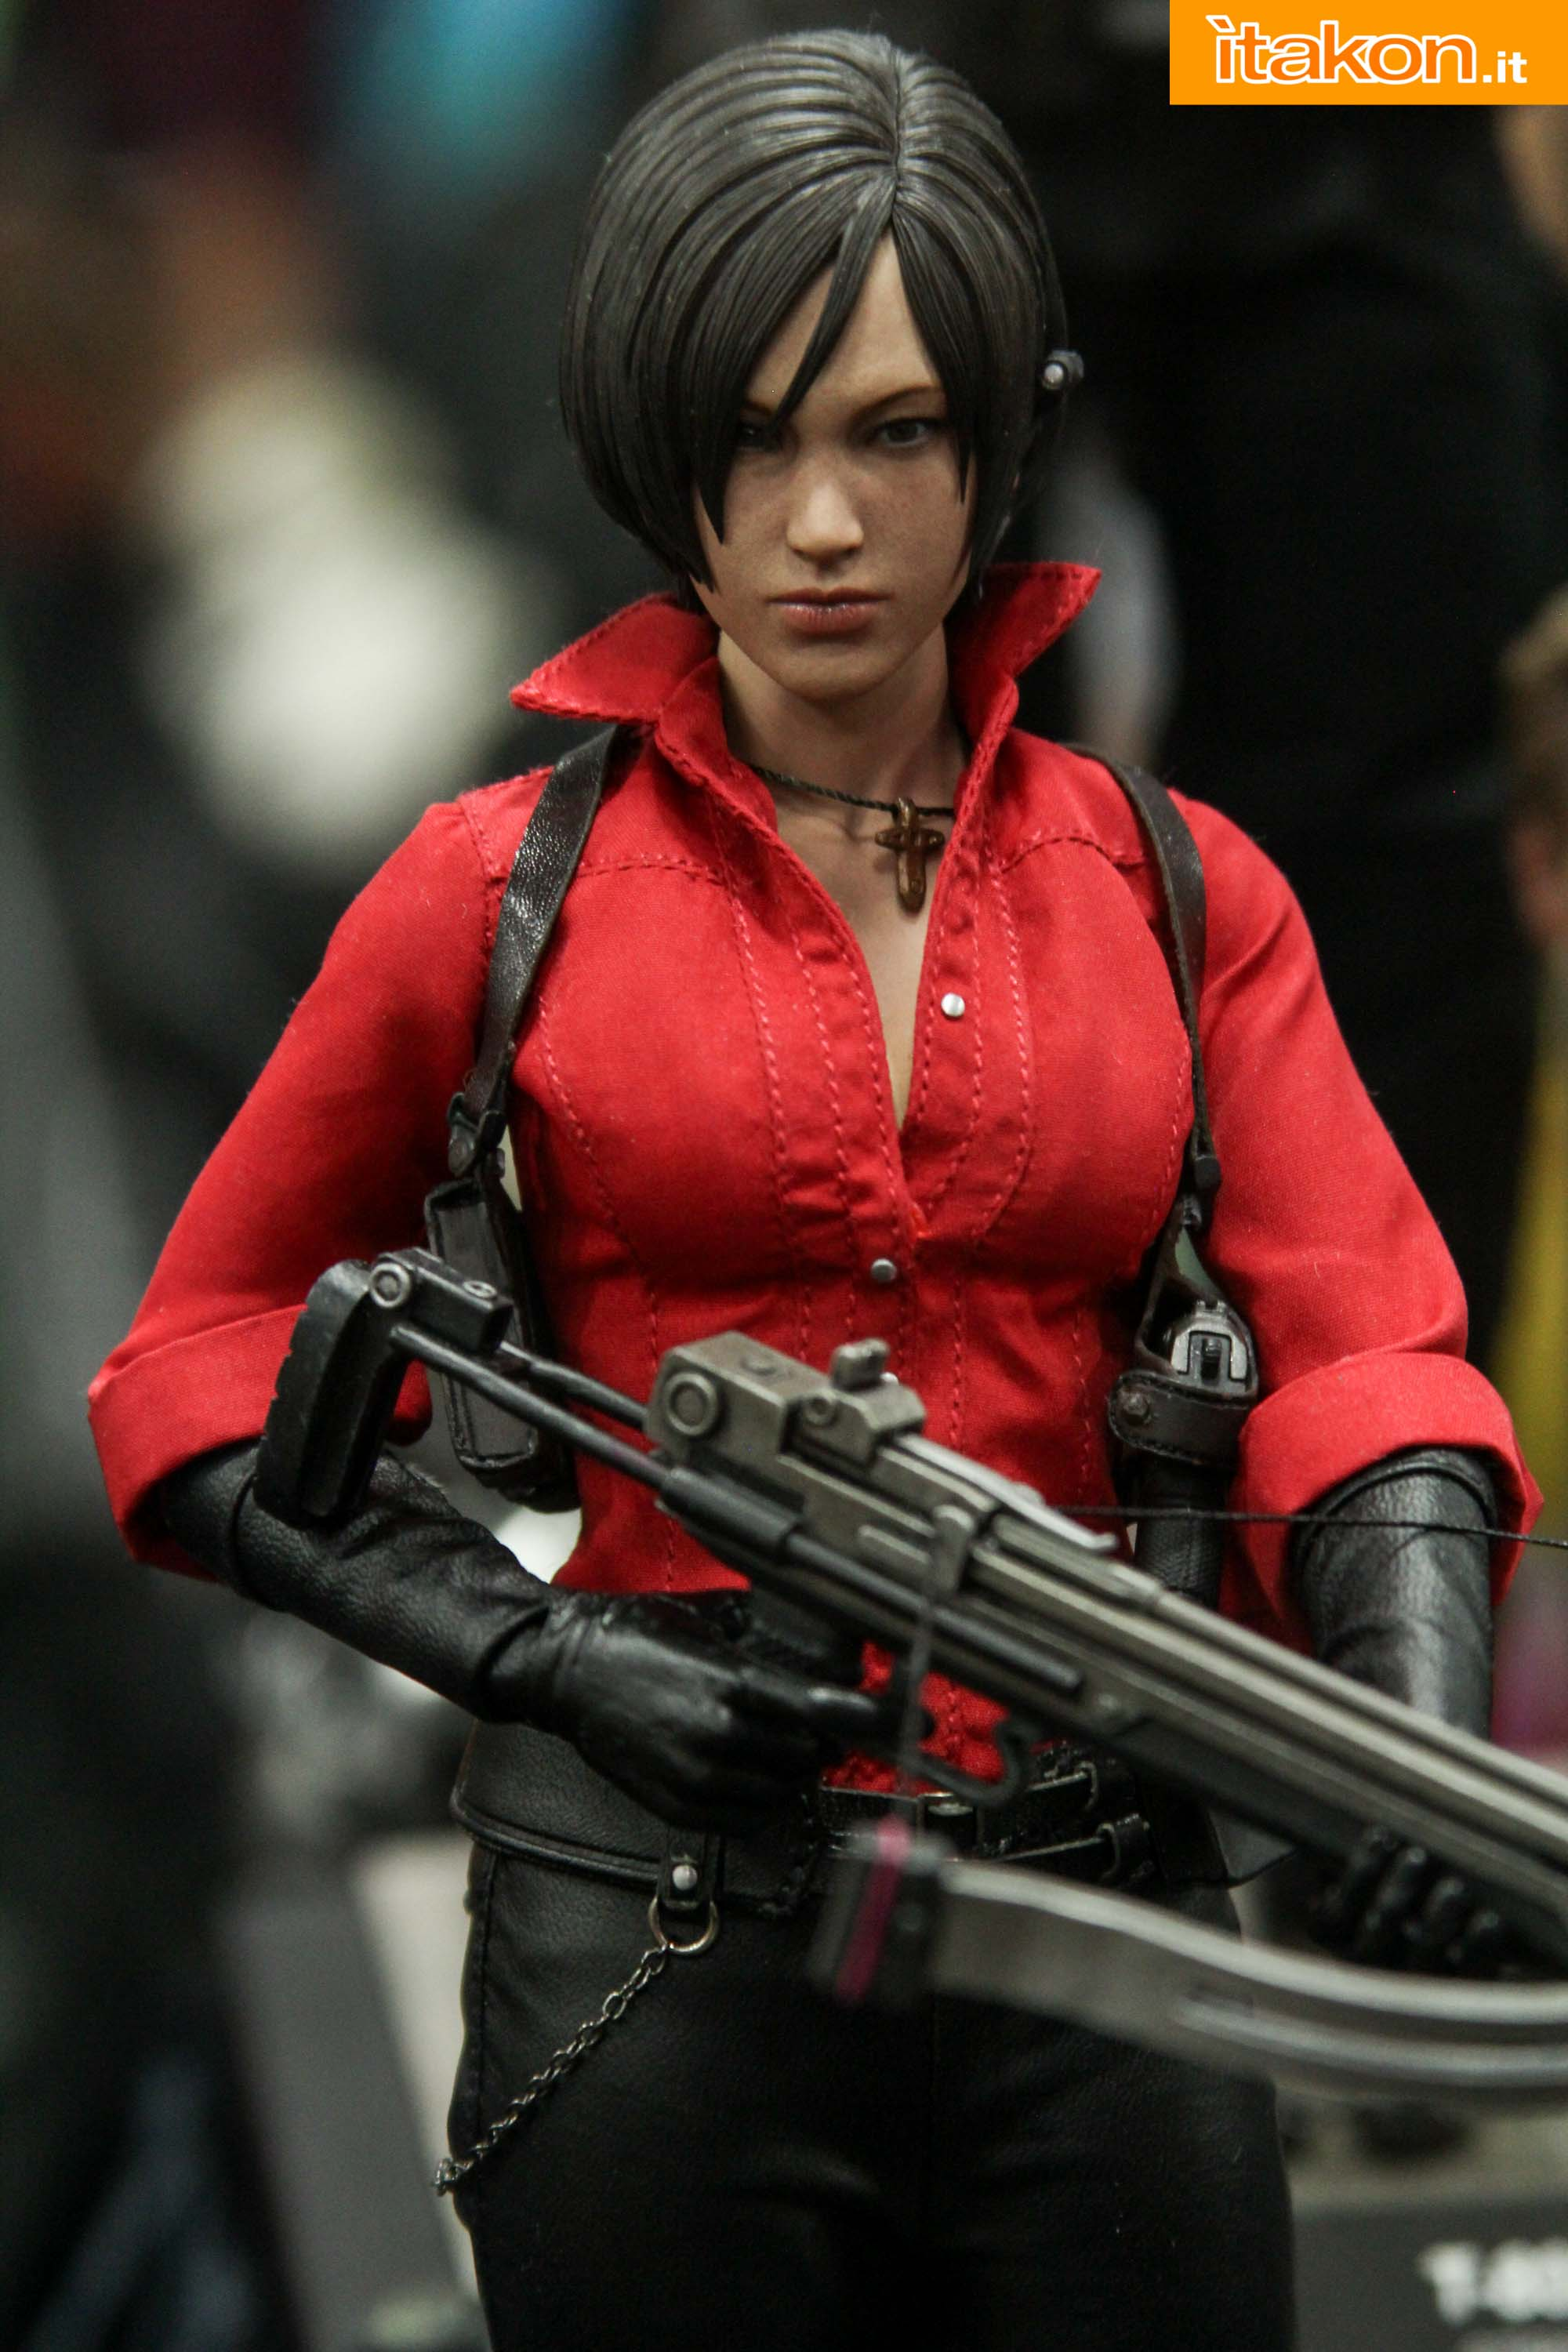 http://i2.wp.com/itakon.it/wp-content/uploads/2015/07/hot-toys-resident-evil-metal-gear-sdcc-2015-16.jpg